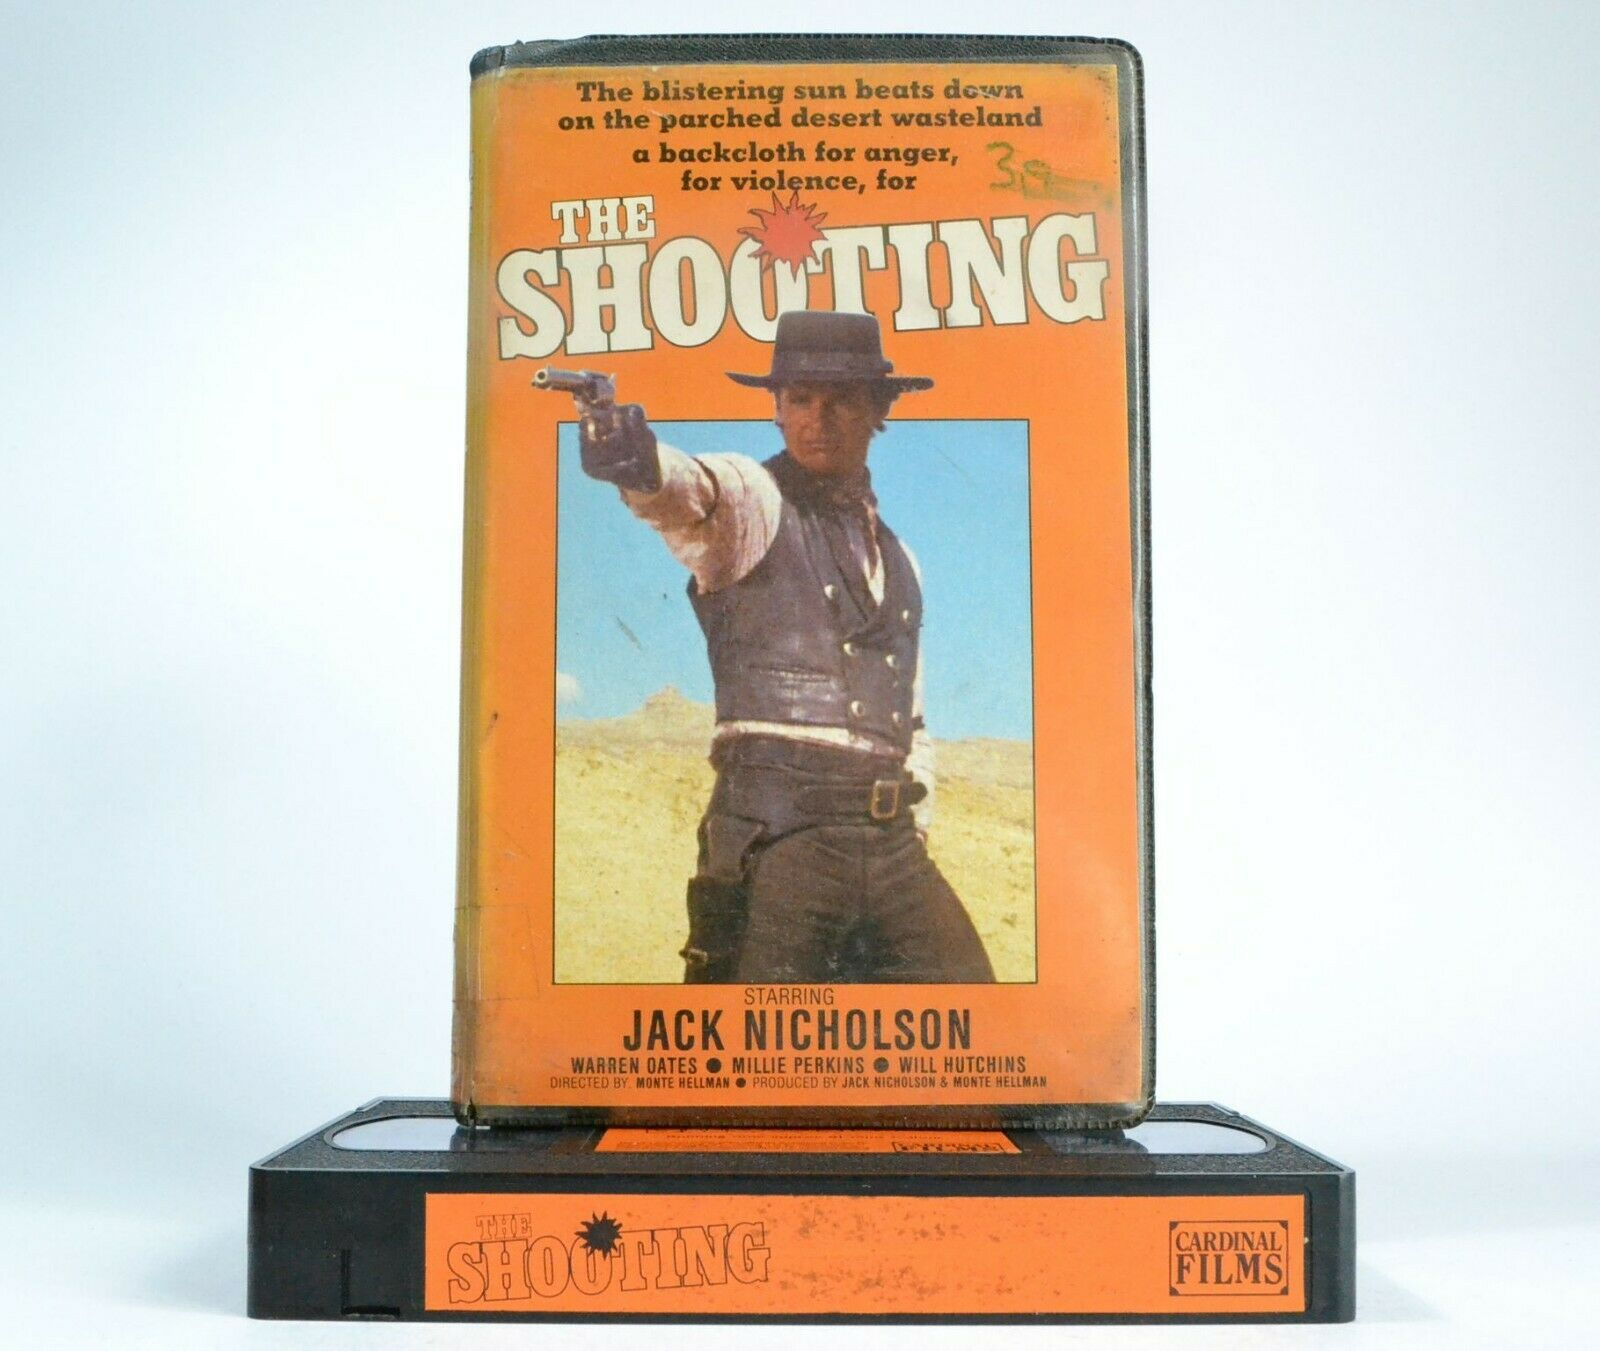 The Shooting (Cardinal Film): Western Action - Pre-Cert - Jack Nicholson - VHS